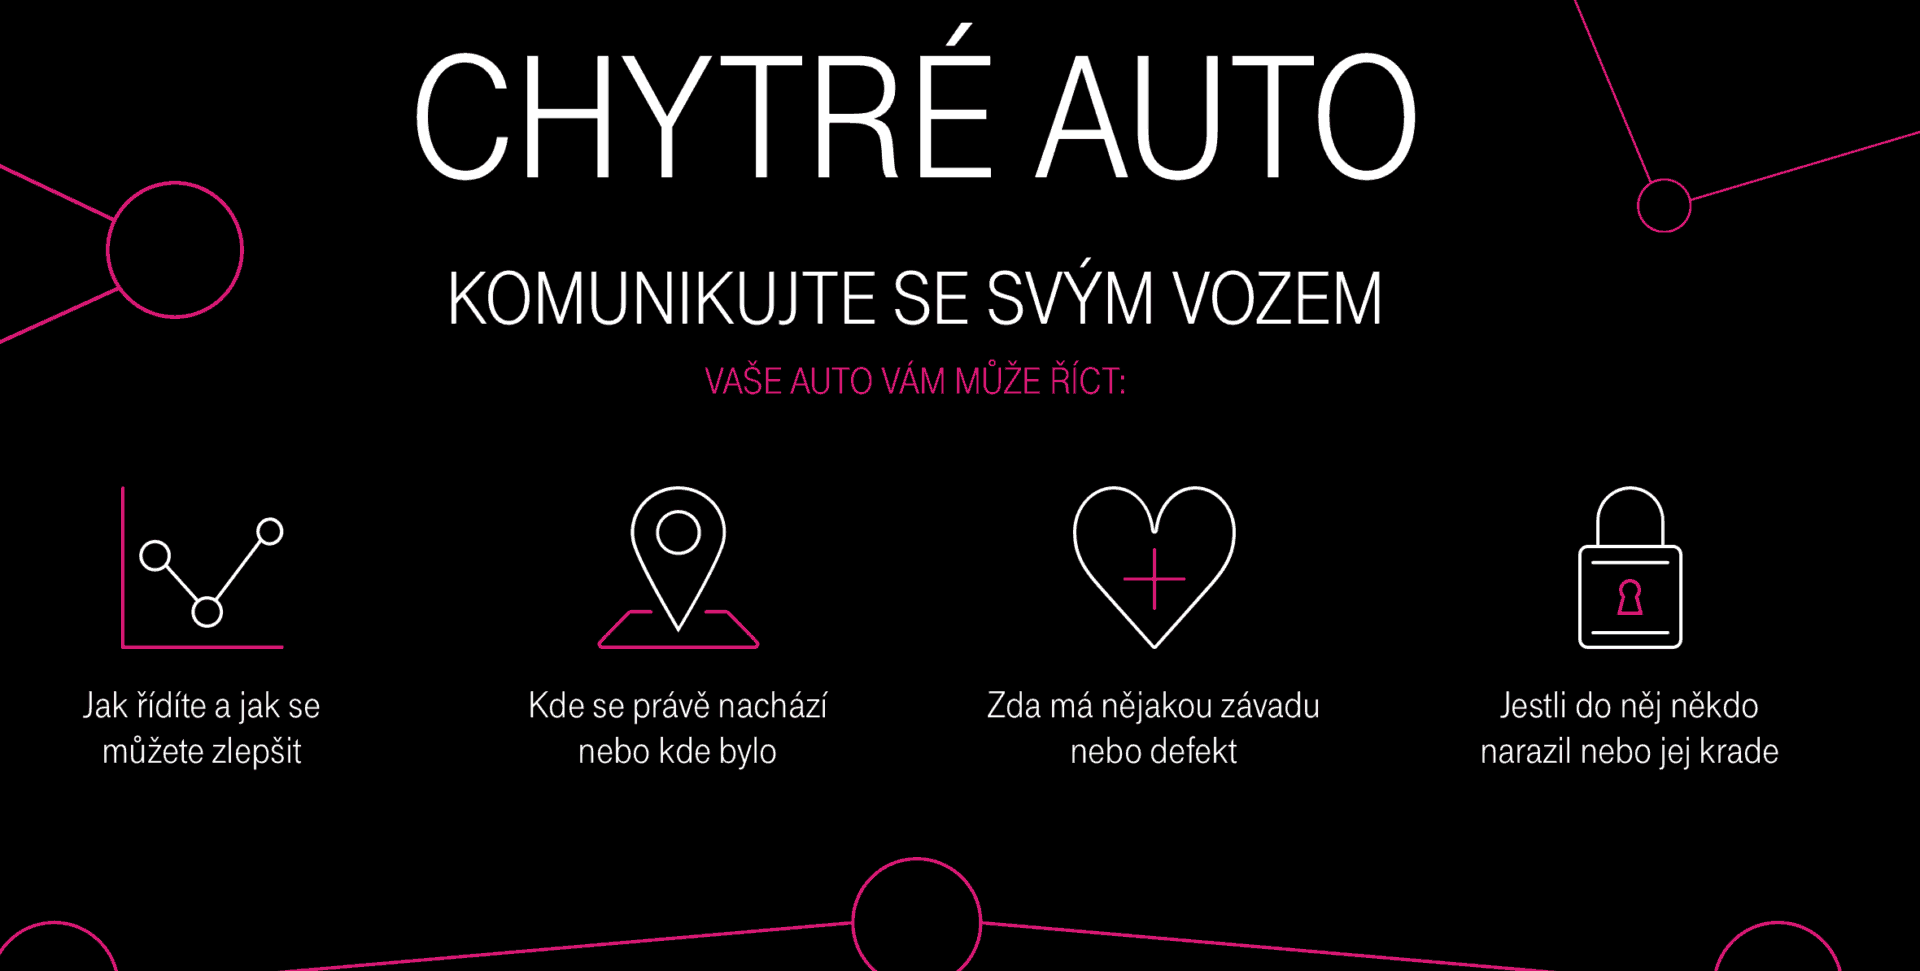 t-mobile-chytre-auto